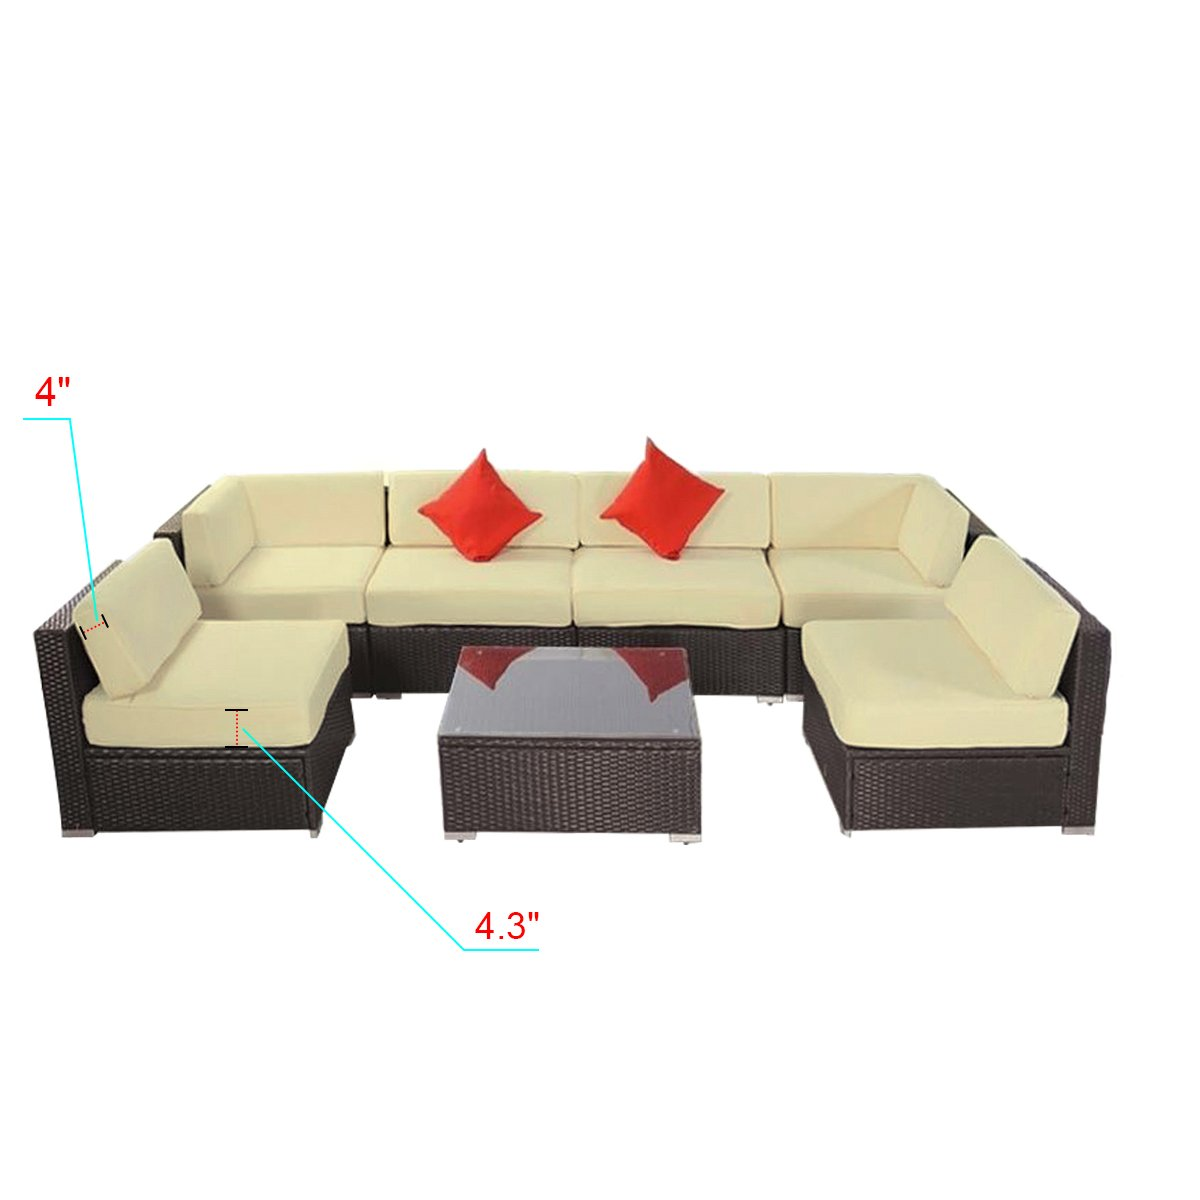 7pcs Polar Aurora Outdoor Patio Furniture Rattan Wicker Sectional Sofa  Chair Couch Set Deluxe (Brown